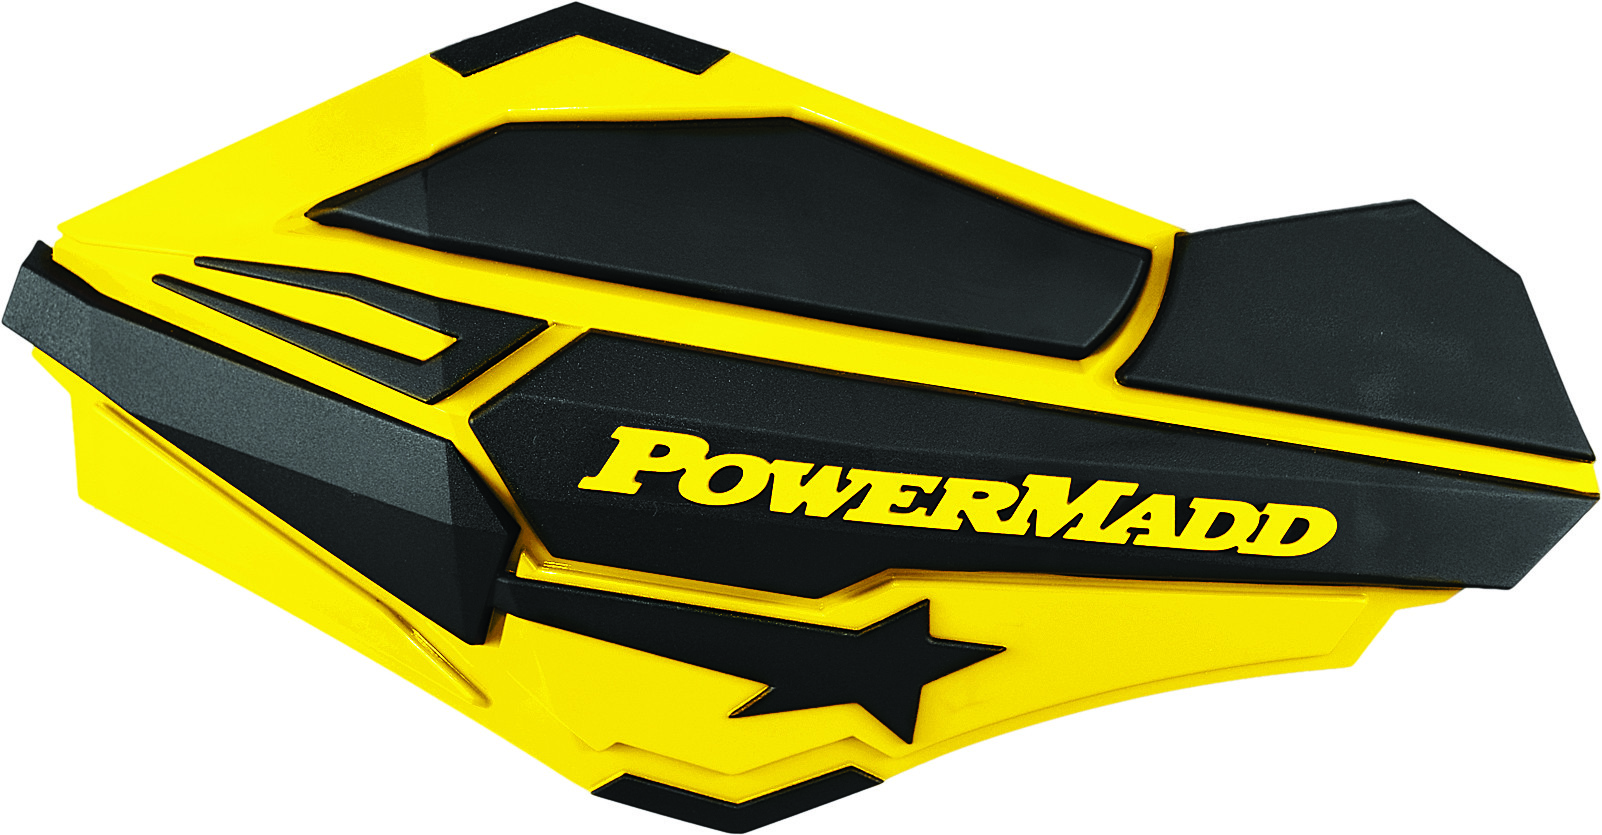 Sentinal Handguards (Suzuki Yellow/Black)